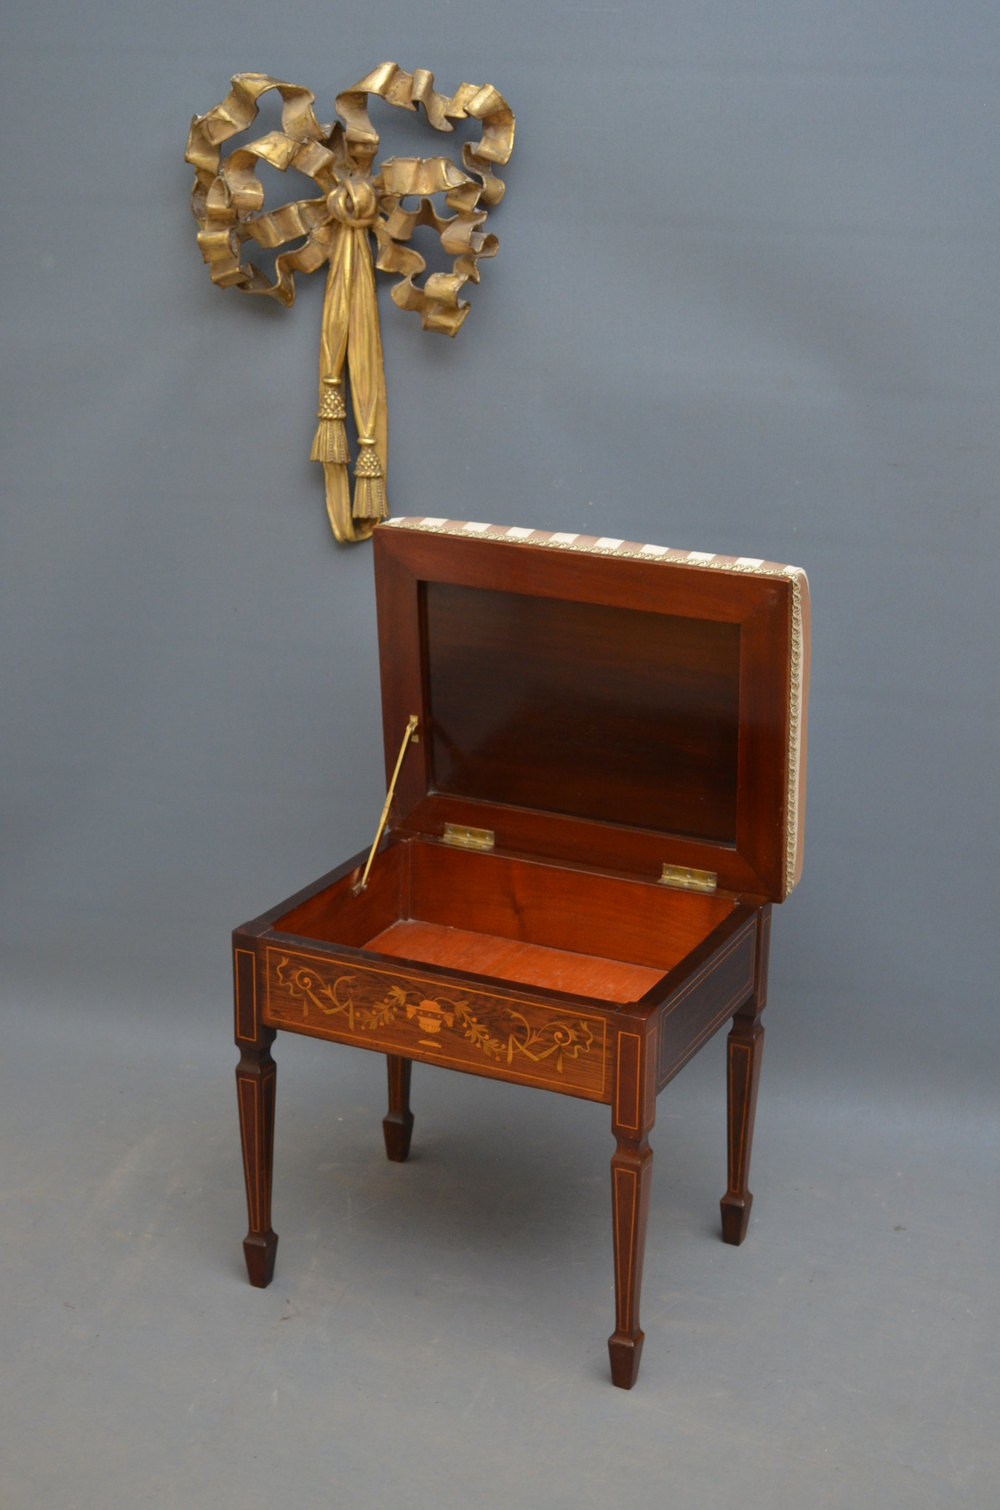 Exceptional Edwardian Rosewood Piano Stool Antiques Atlas